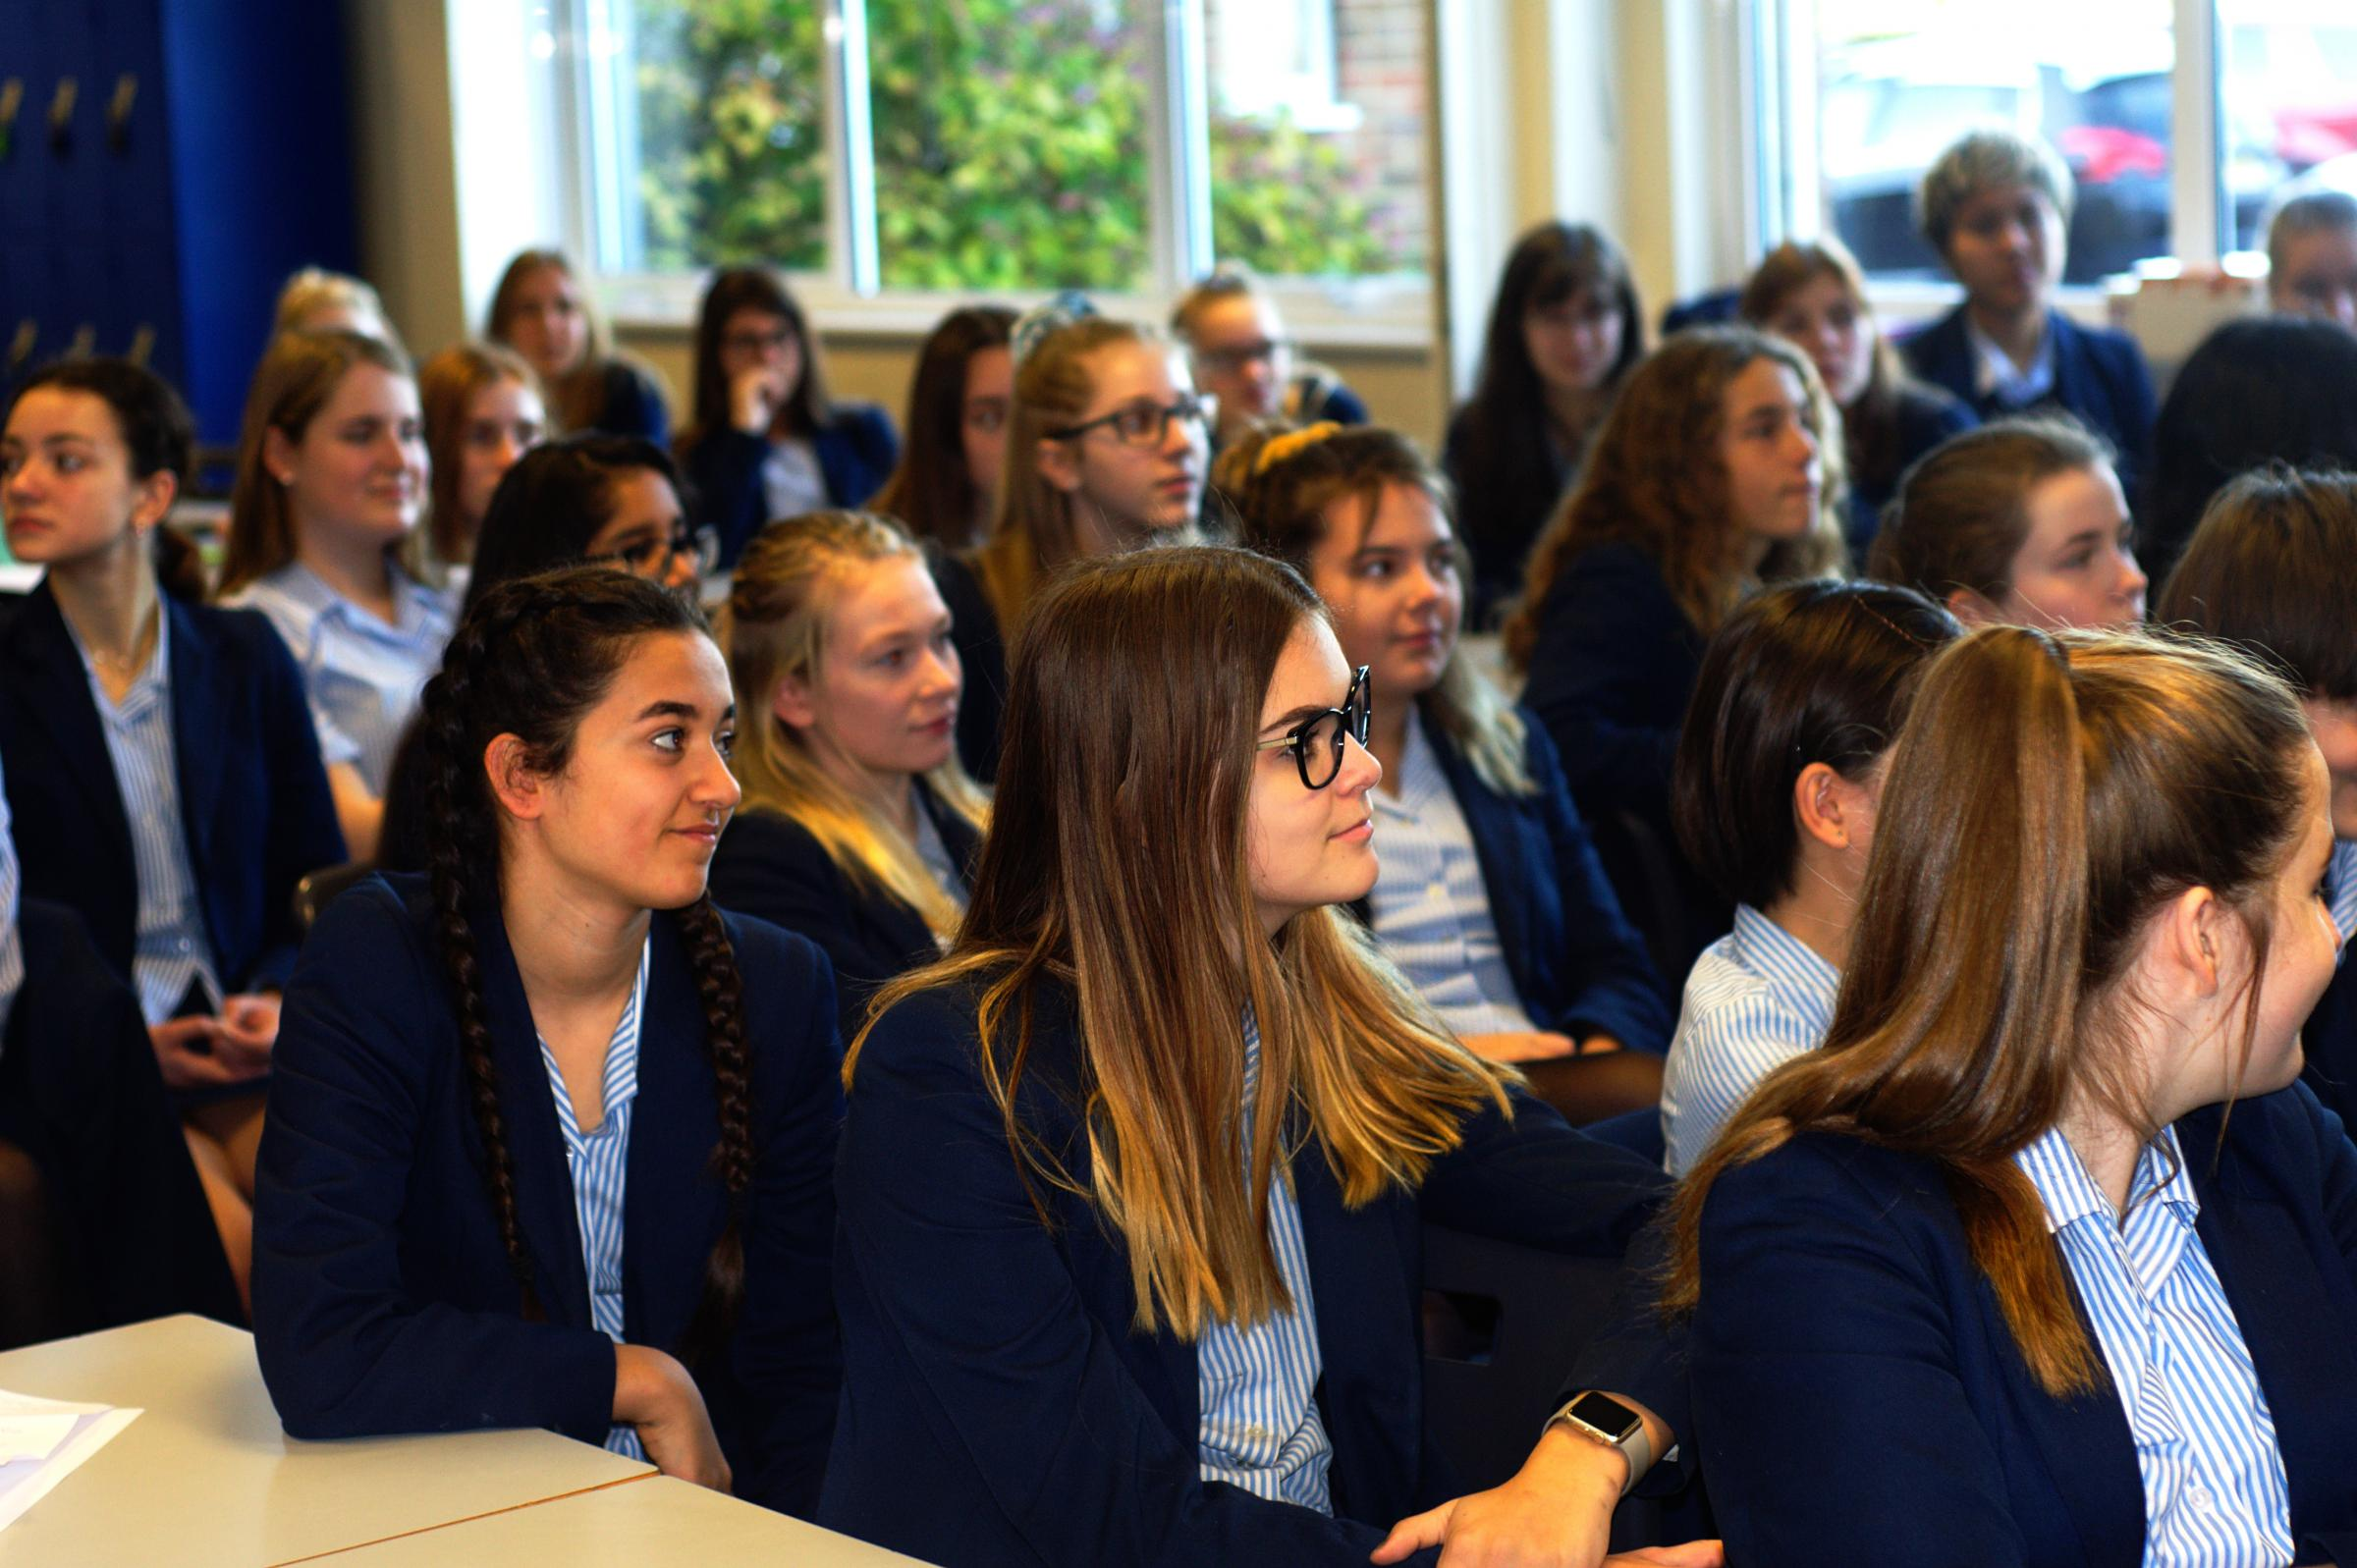 Staff from Redweb visited Bournemouth School for Girls on Digital Day